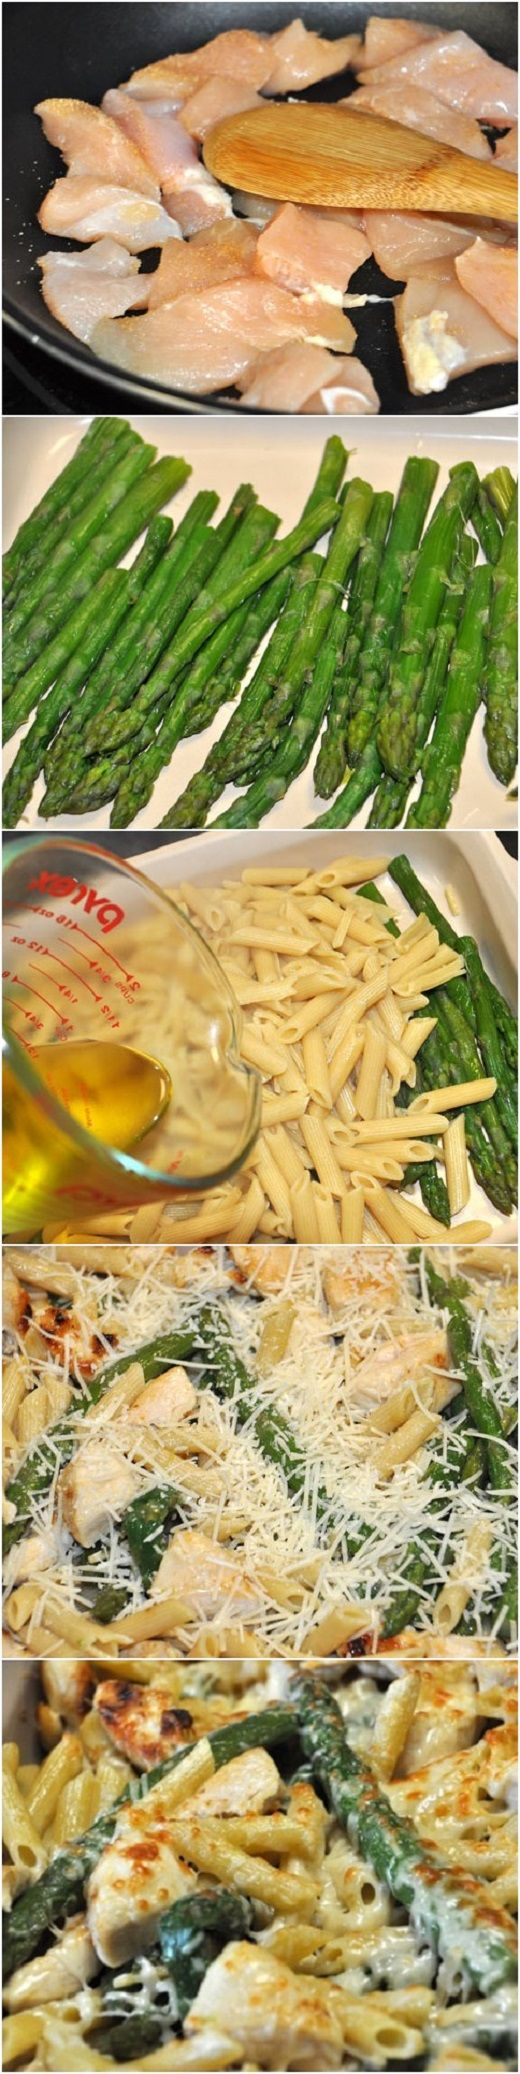 where can i buy fitflops in cape town Penne with Chicken and Asparagus Recipe